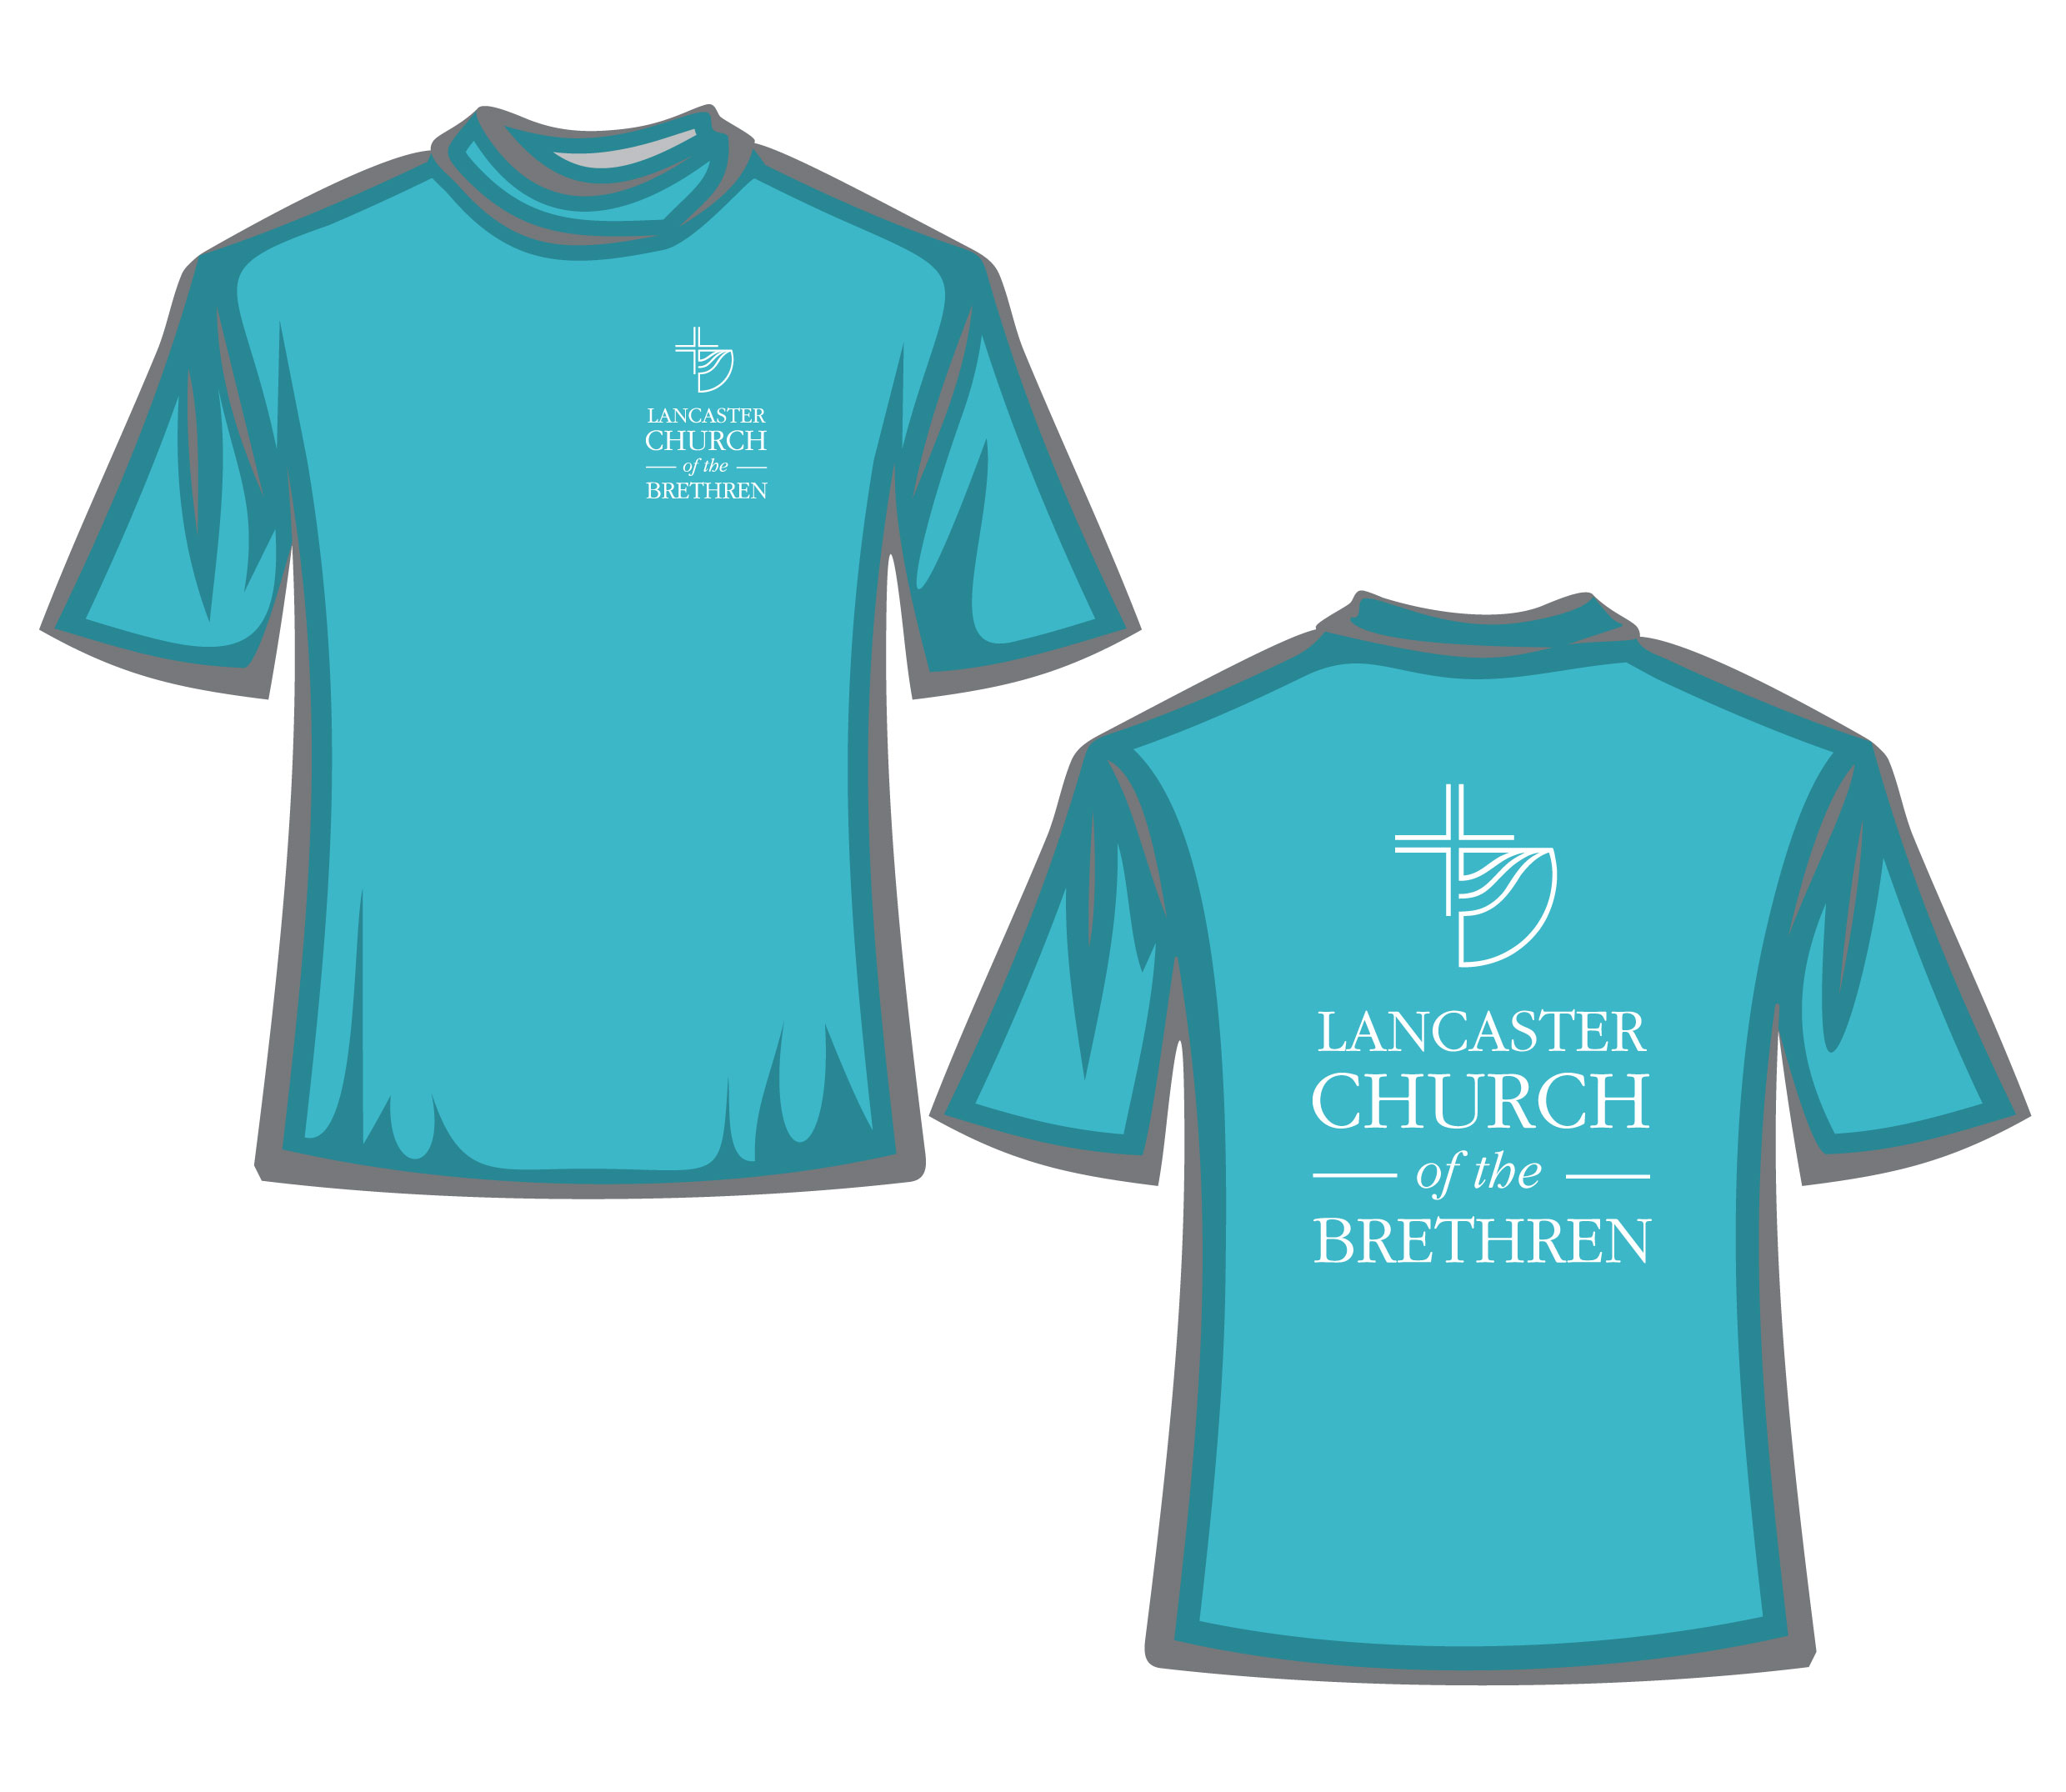 church t shirts related keywords suggestions church t shirts long